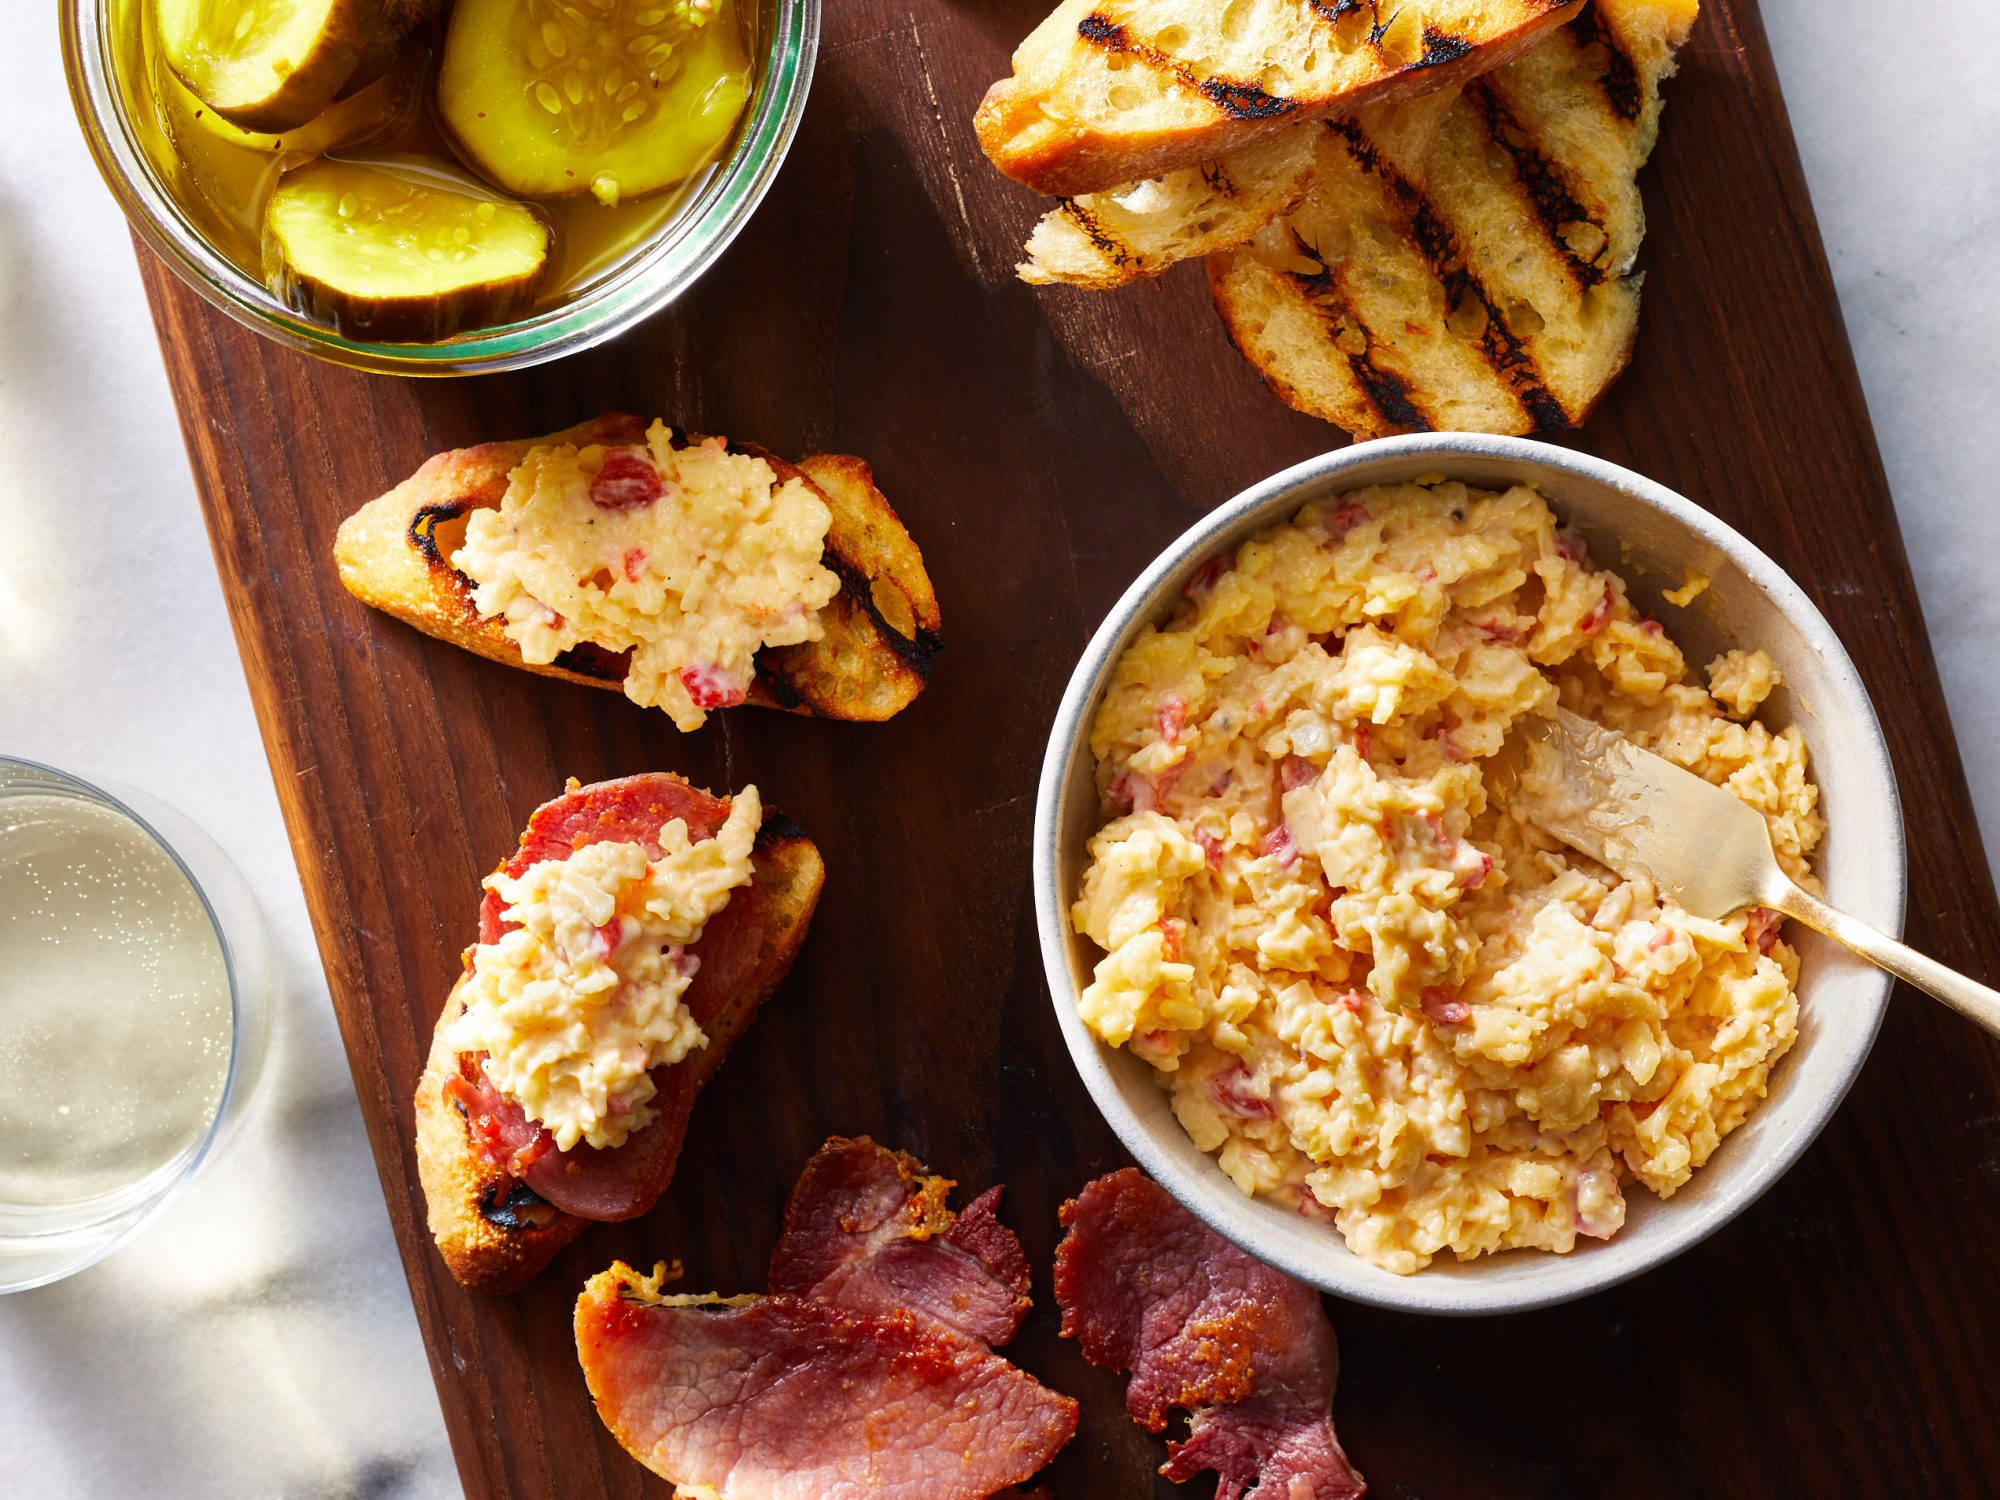 Peaceburg Pimiento Cheese